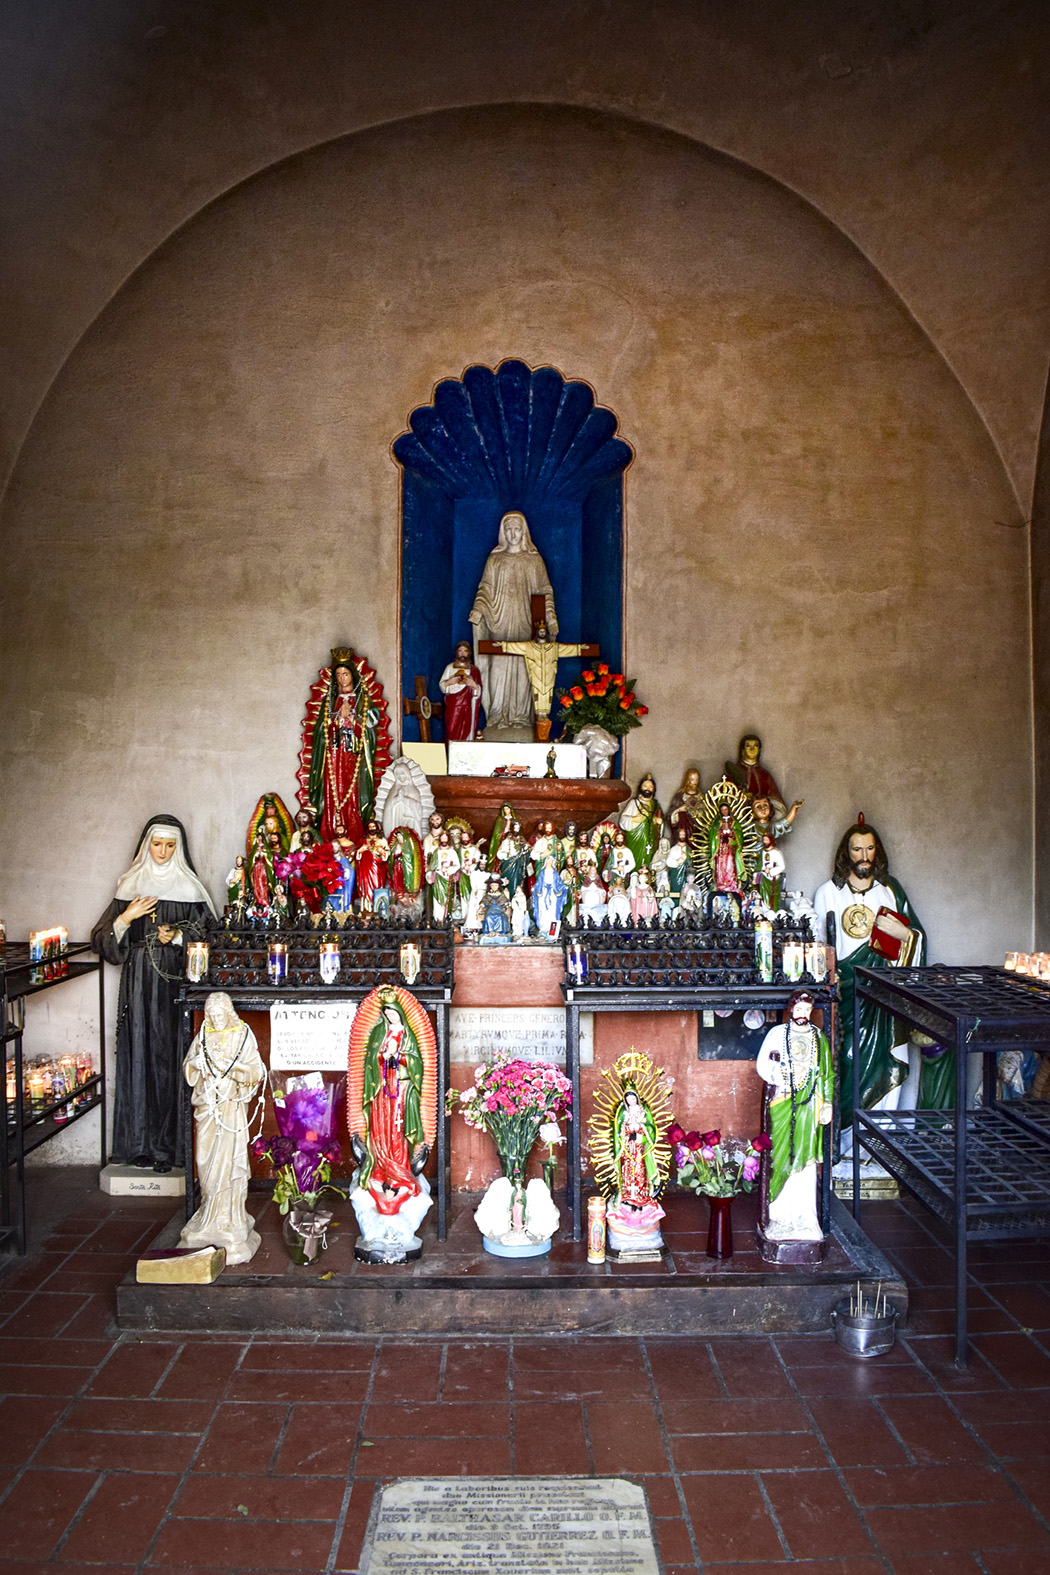 Shrine, Mission San Xavier del Bac, Arizona, USA